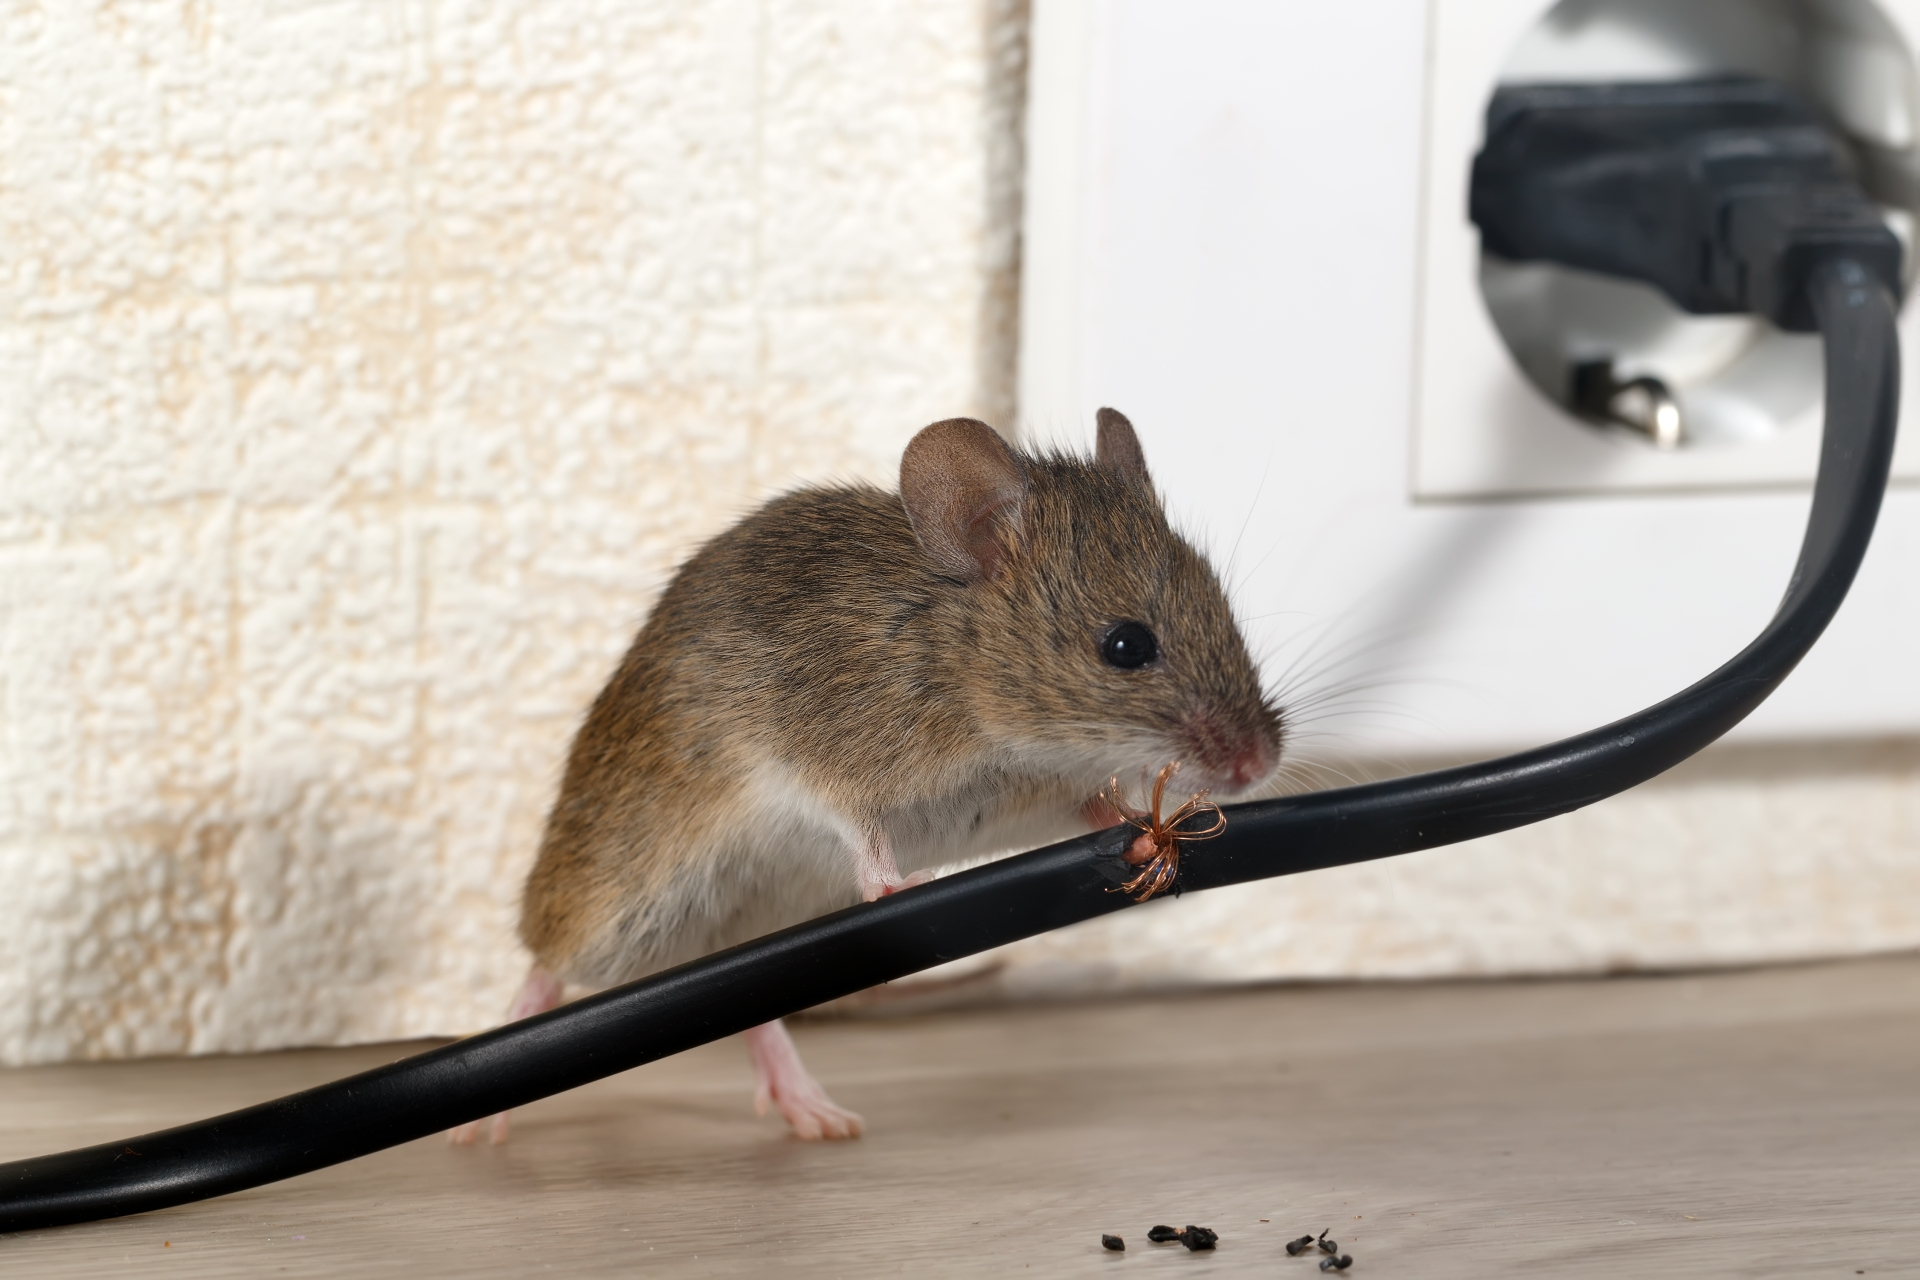 Mice Infestation, Pest Control in Purfleet, RM19. Call Now 020 8166 9746